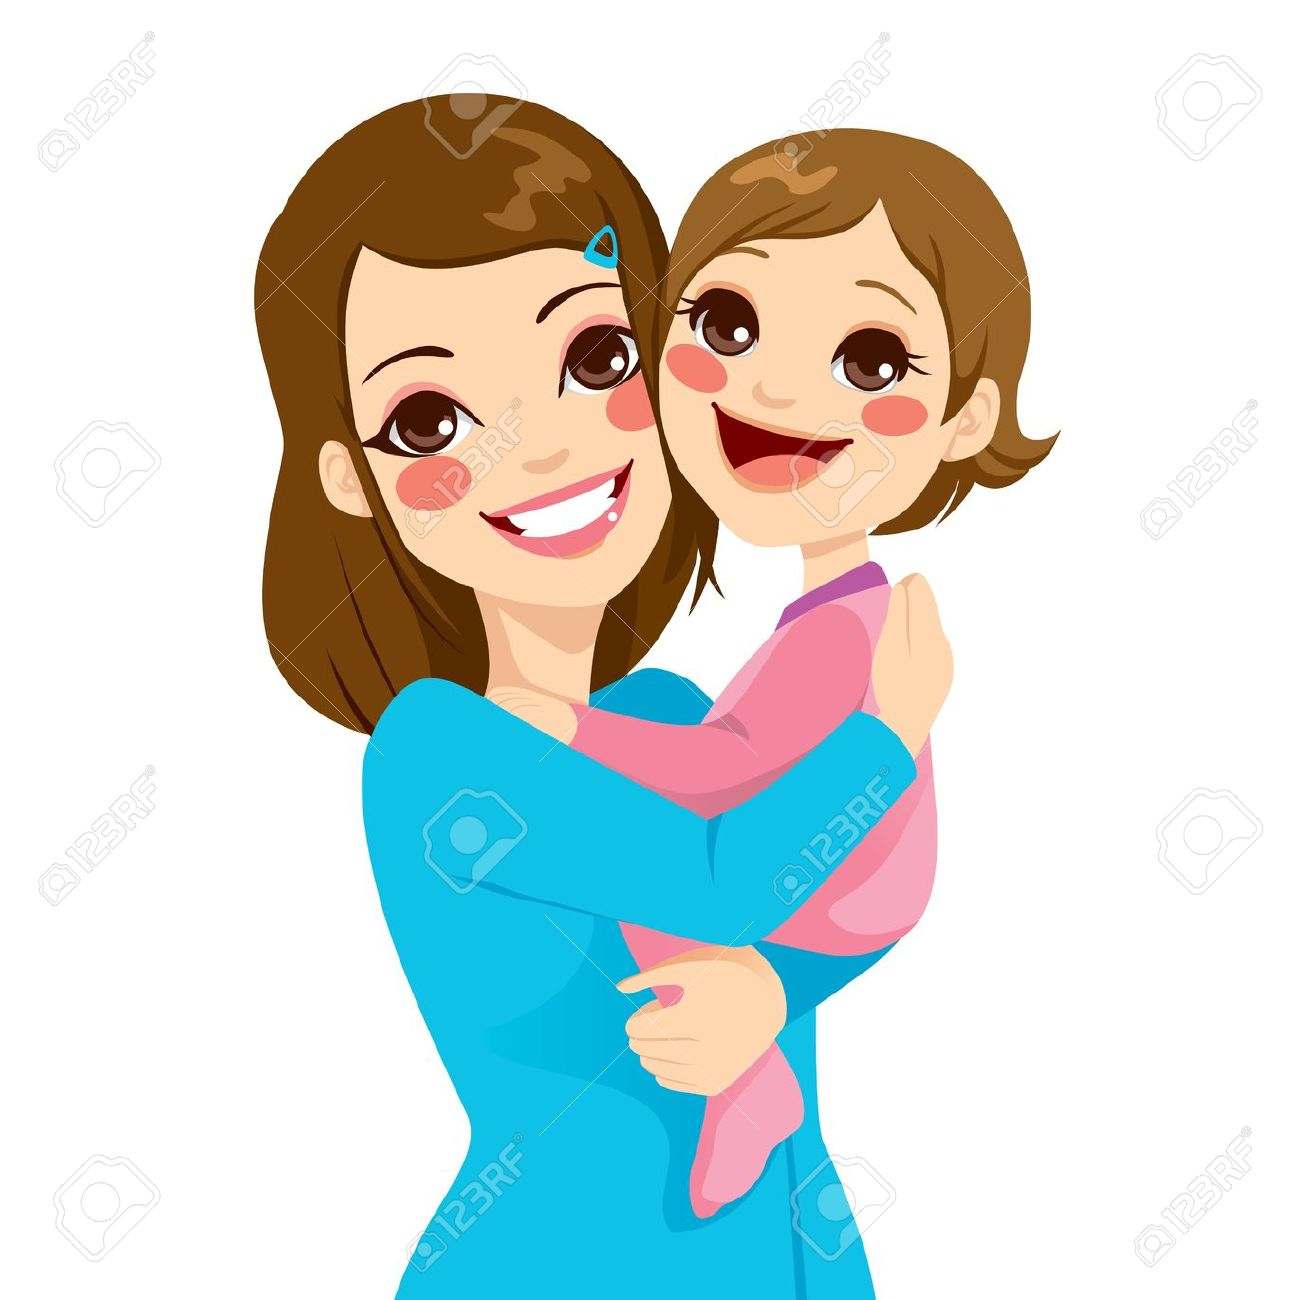 clipart boy hugging parent clipground baby buggy clipart Baby Buggy Illustration